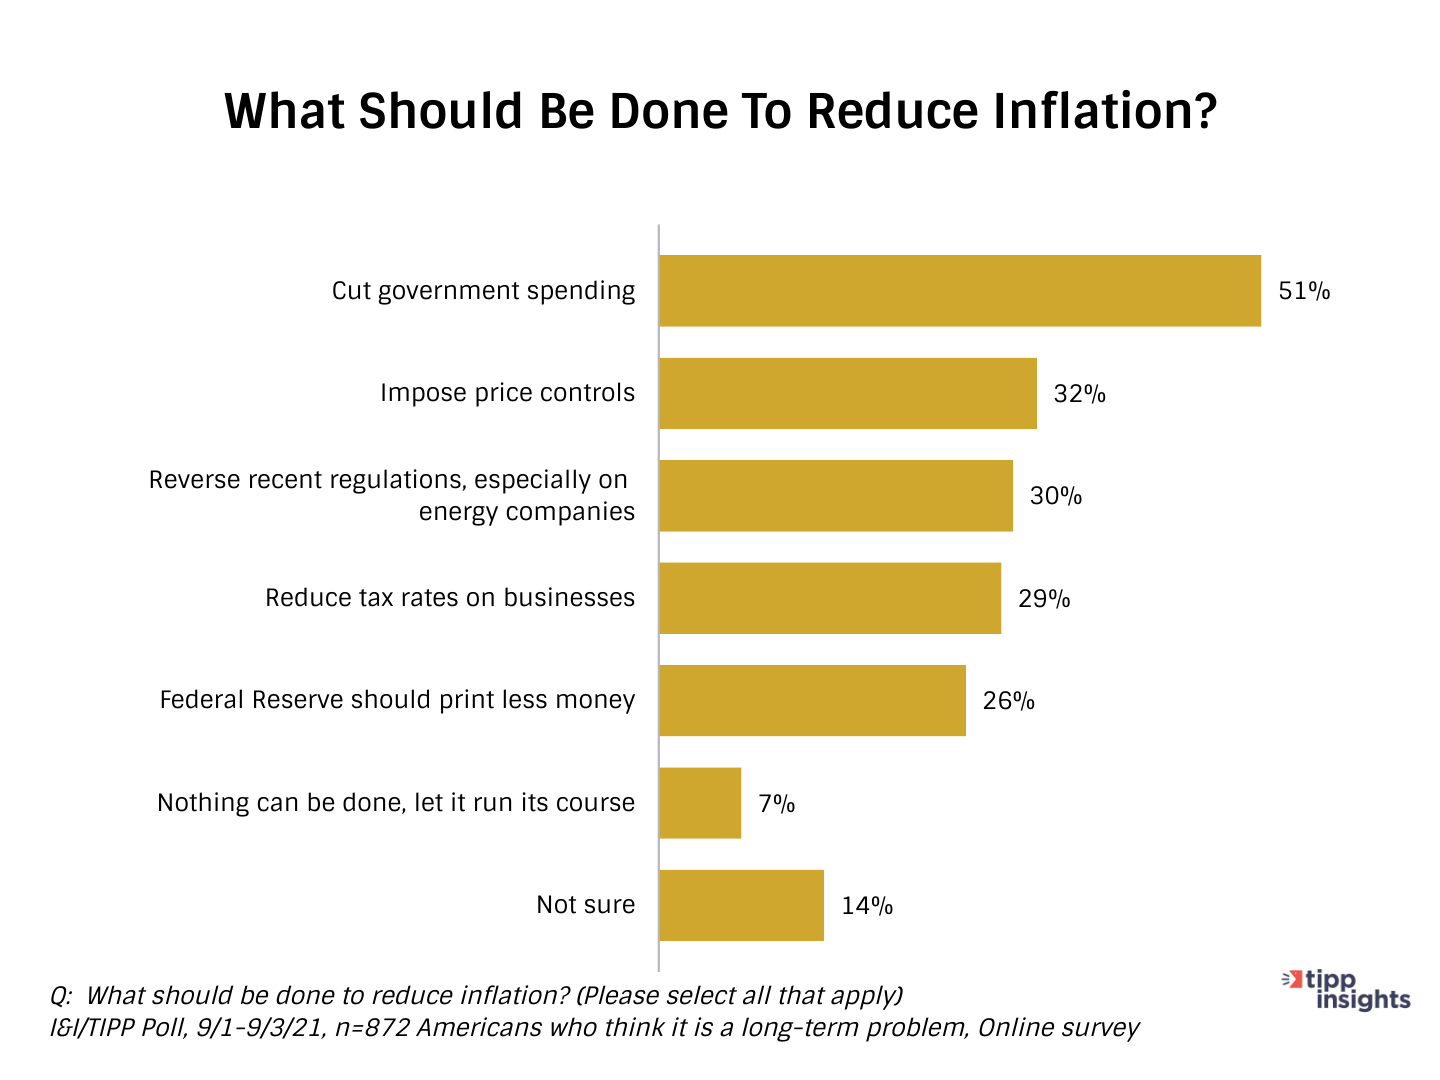 I&I/TIPP Poll Results: Americans and what should be done to reduce inflation